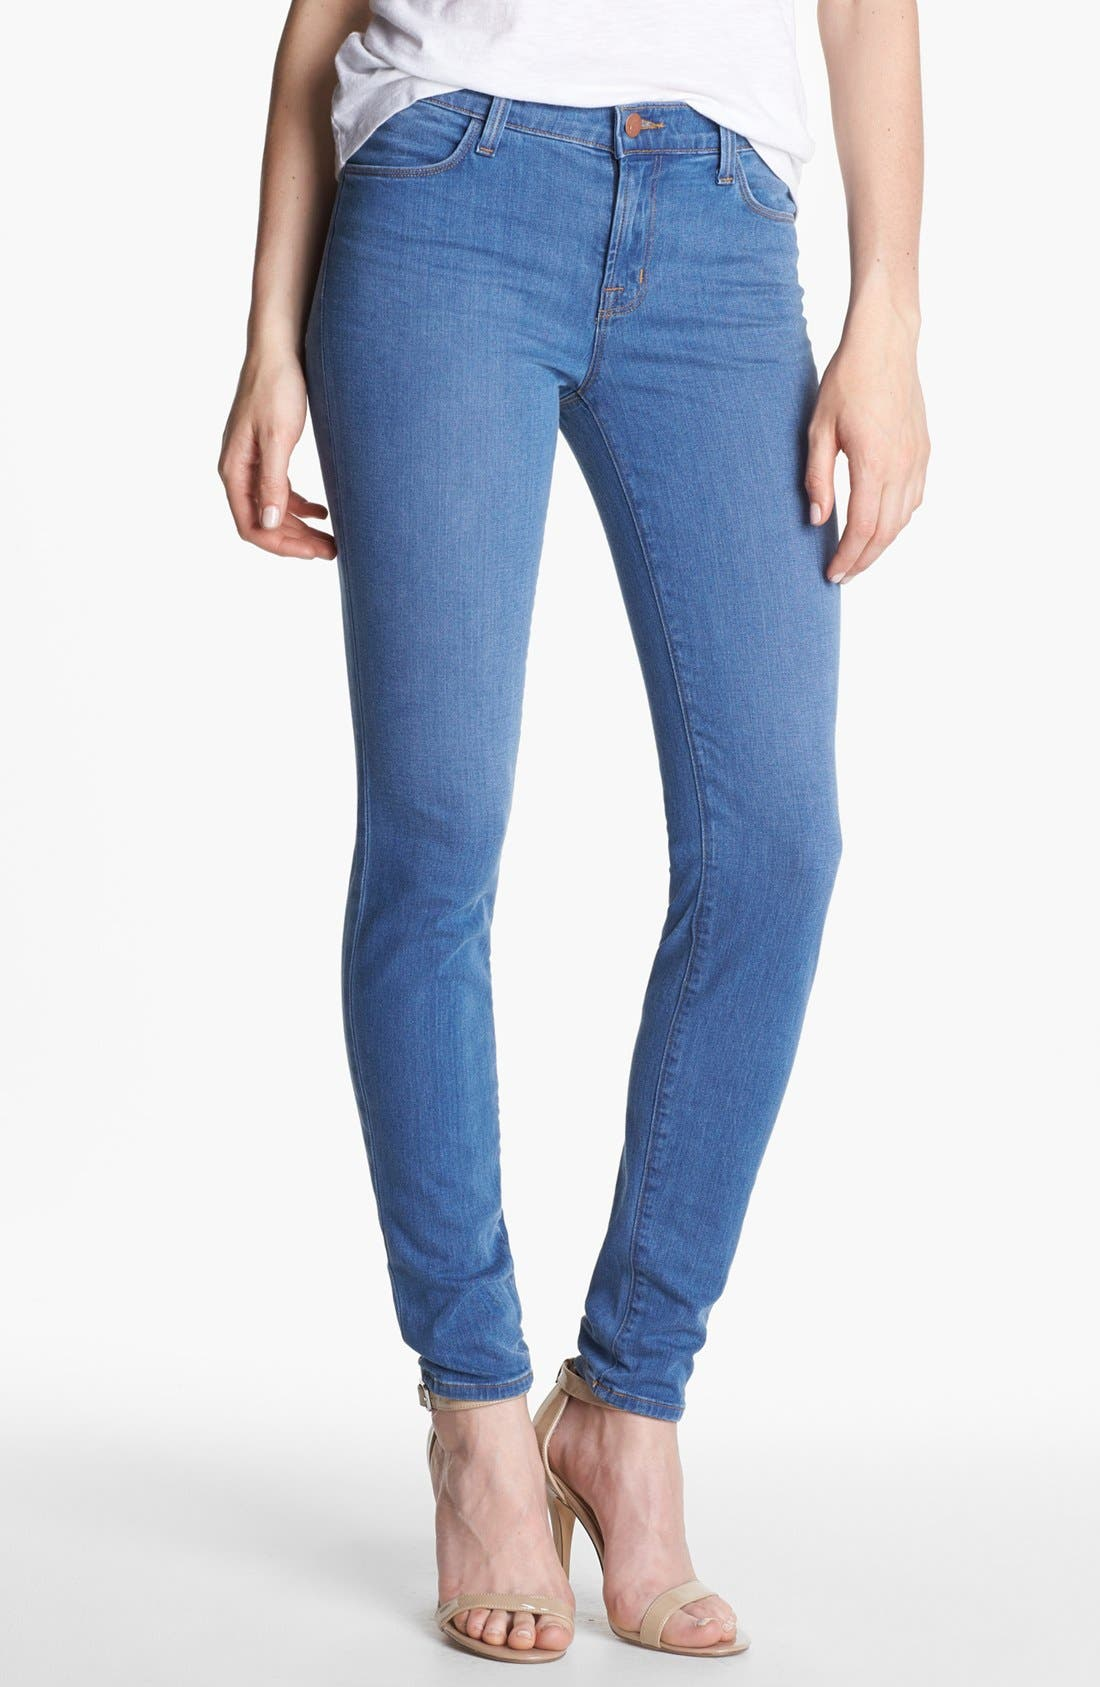 Alternate Image 1 Selected - J Brand '620' Mid-Rise Skinny Jeans (Lucas)